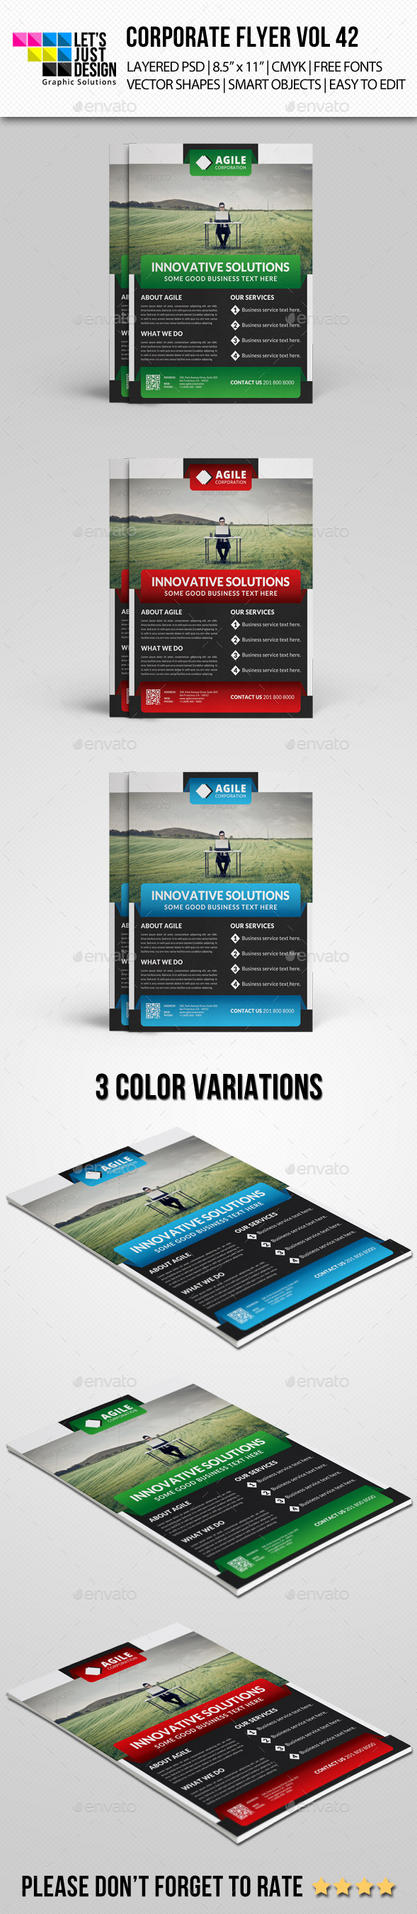 Corporate Flyer Template Vol 42 by jasonmendes